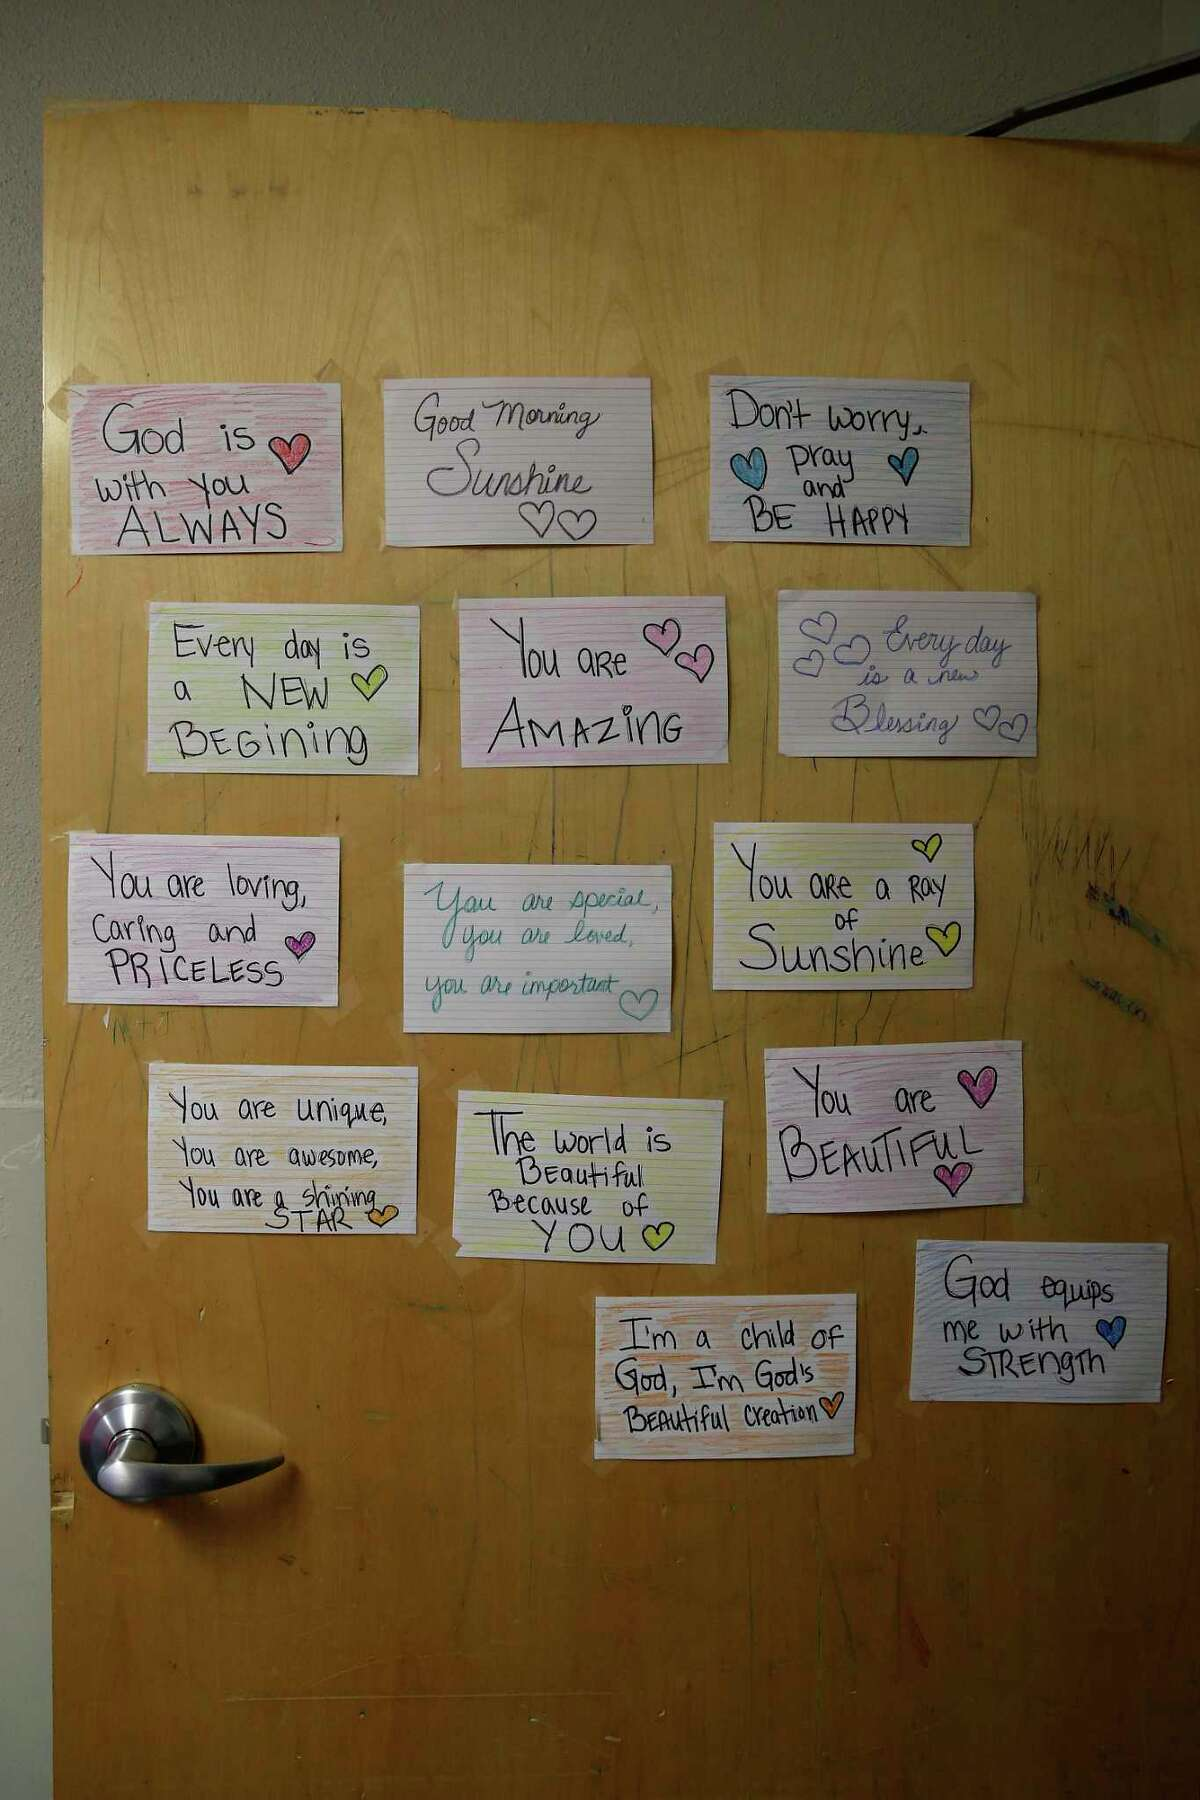 A young client wrote some affirmations and taped them to his door at the Whataburger Center for Children & Youth.